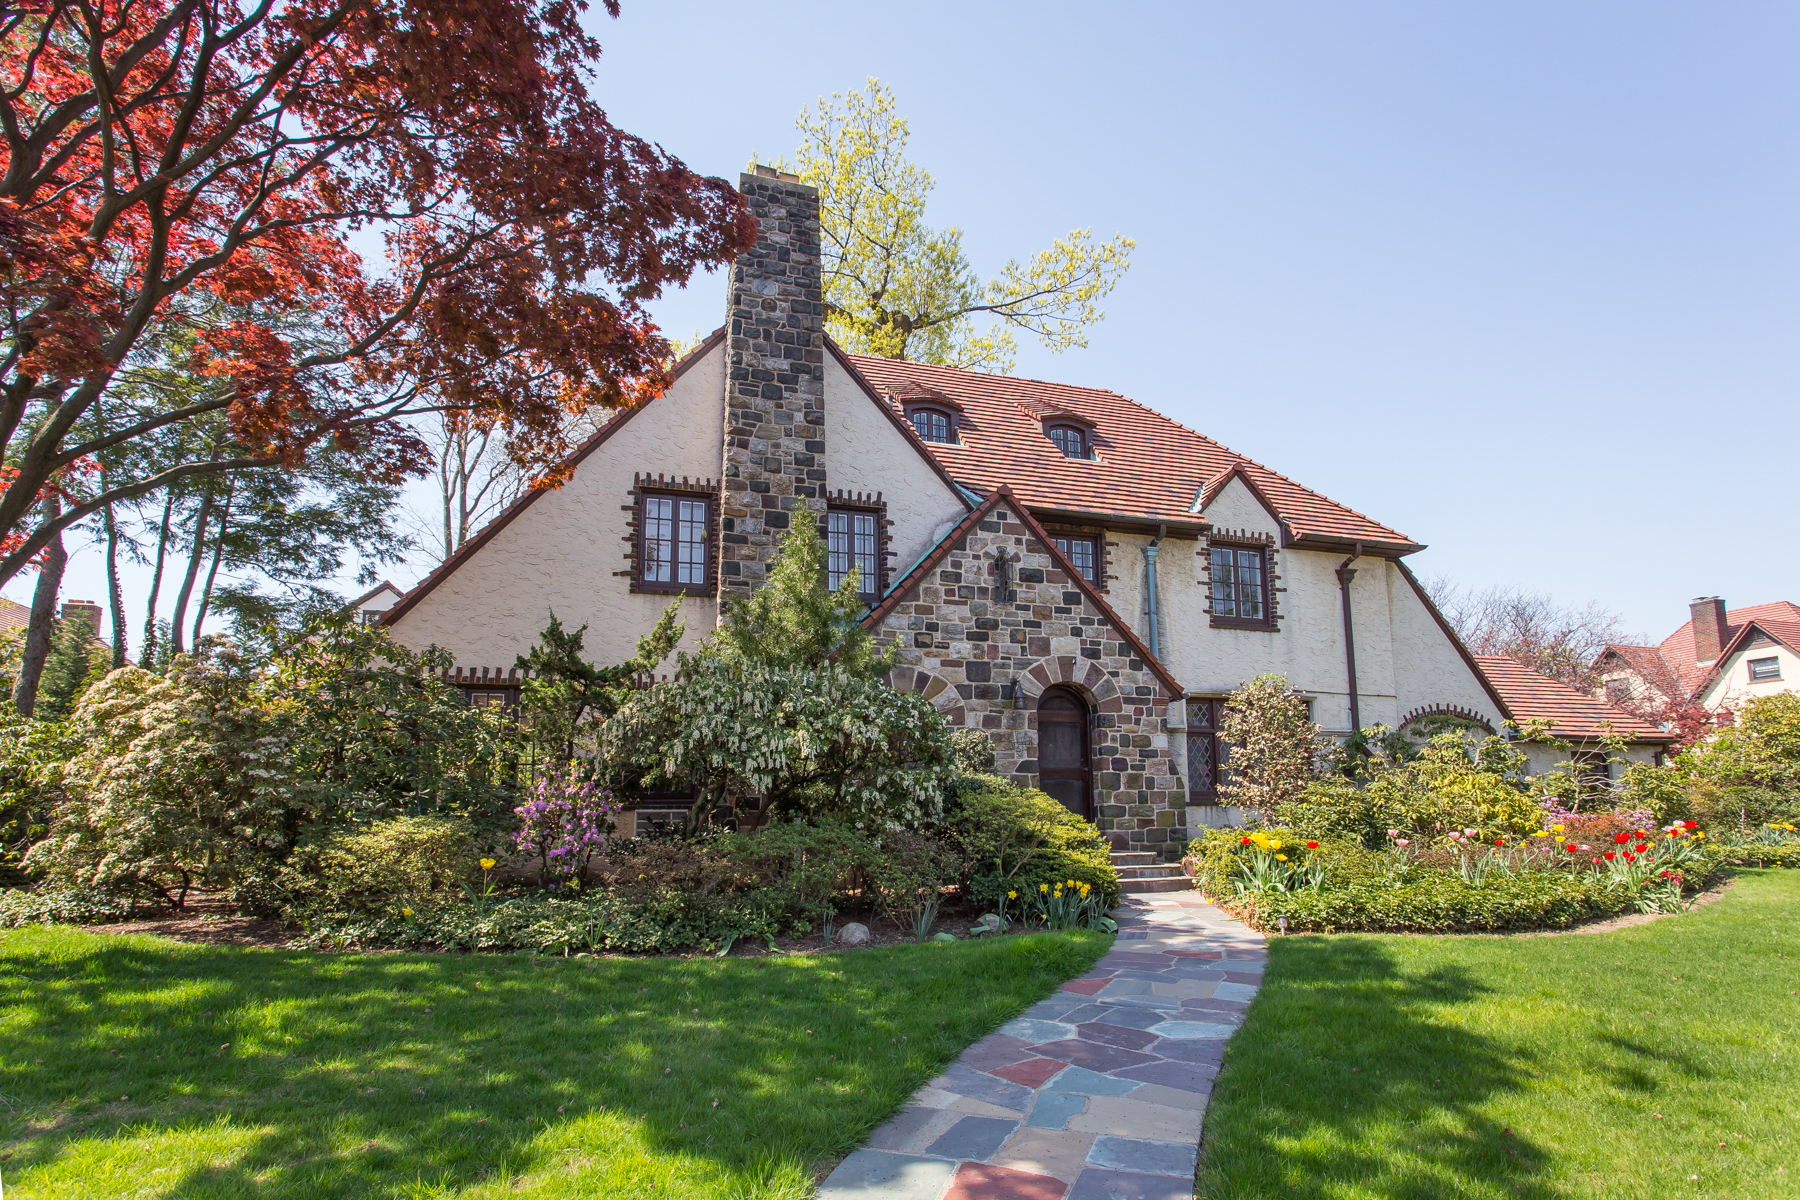 """Single Family Homes for Sale at """"LEGENDARY TUDOR MASTERPIECE"""" 55 Exeter Street, Forest Hills Gardens, Queens, New York 11375 United States"""